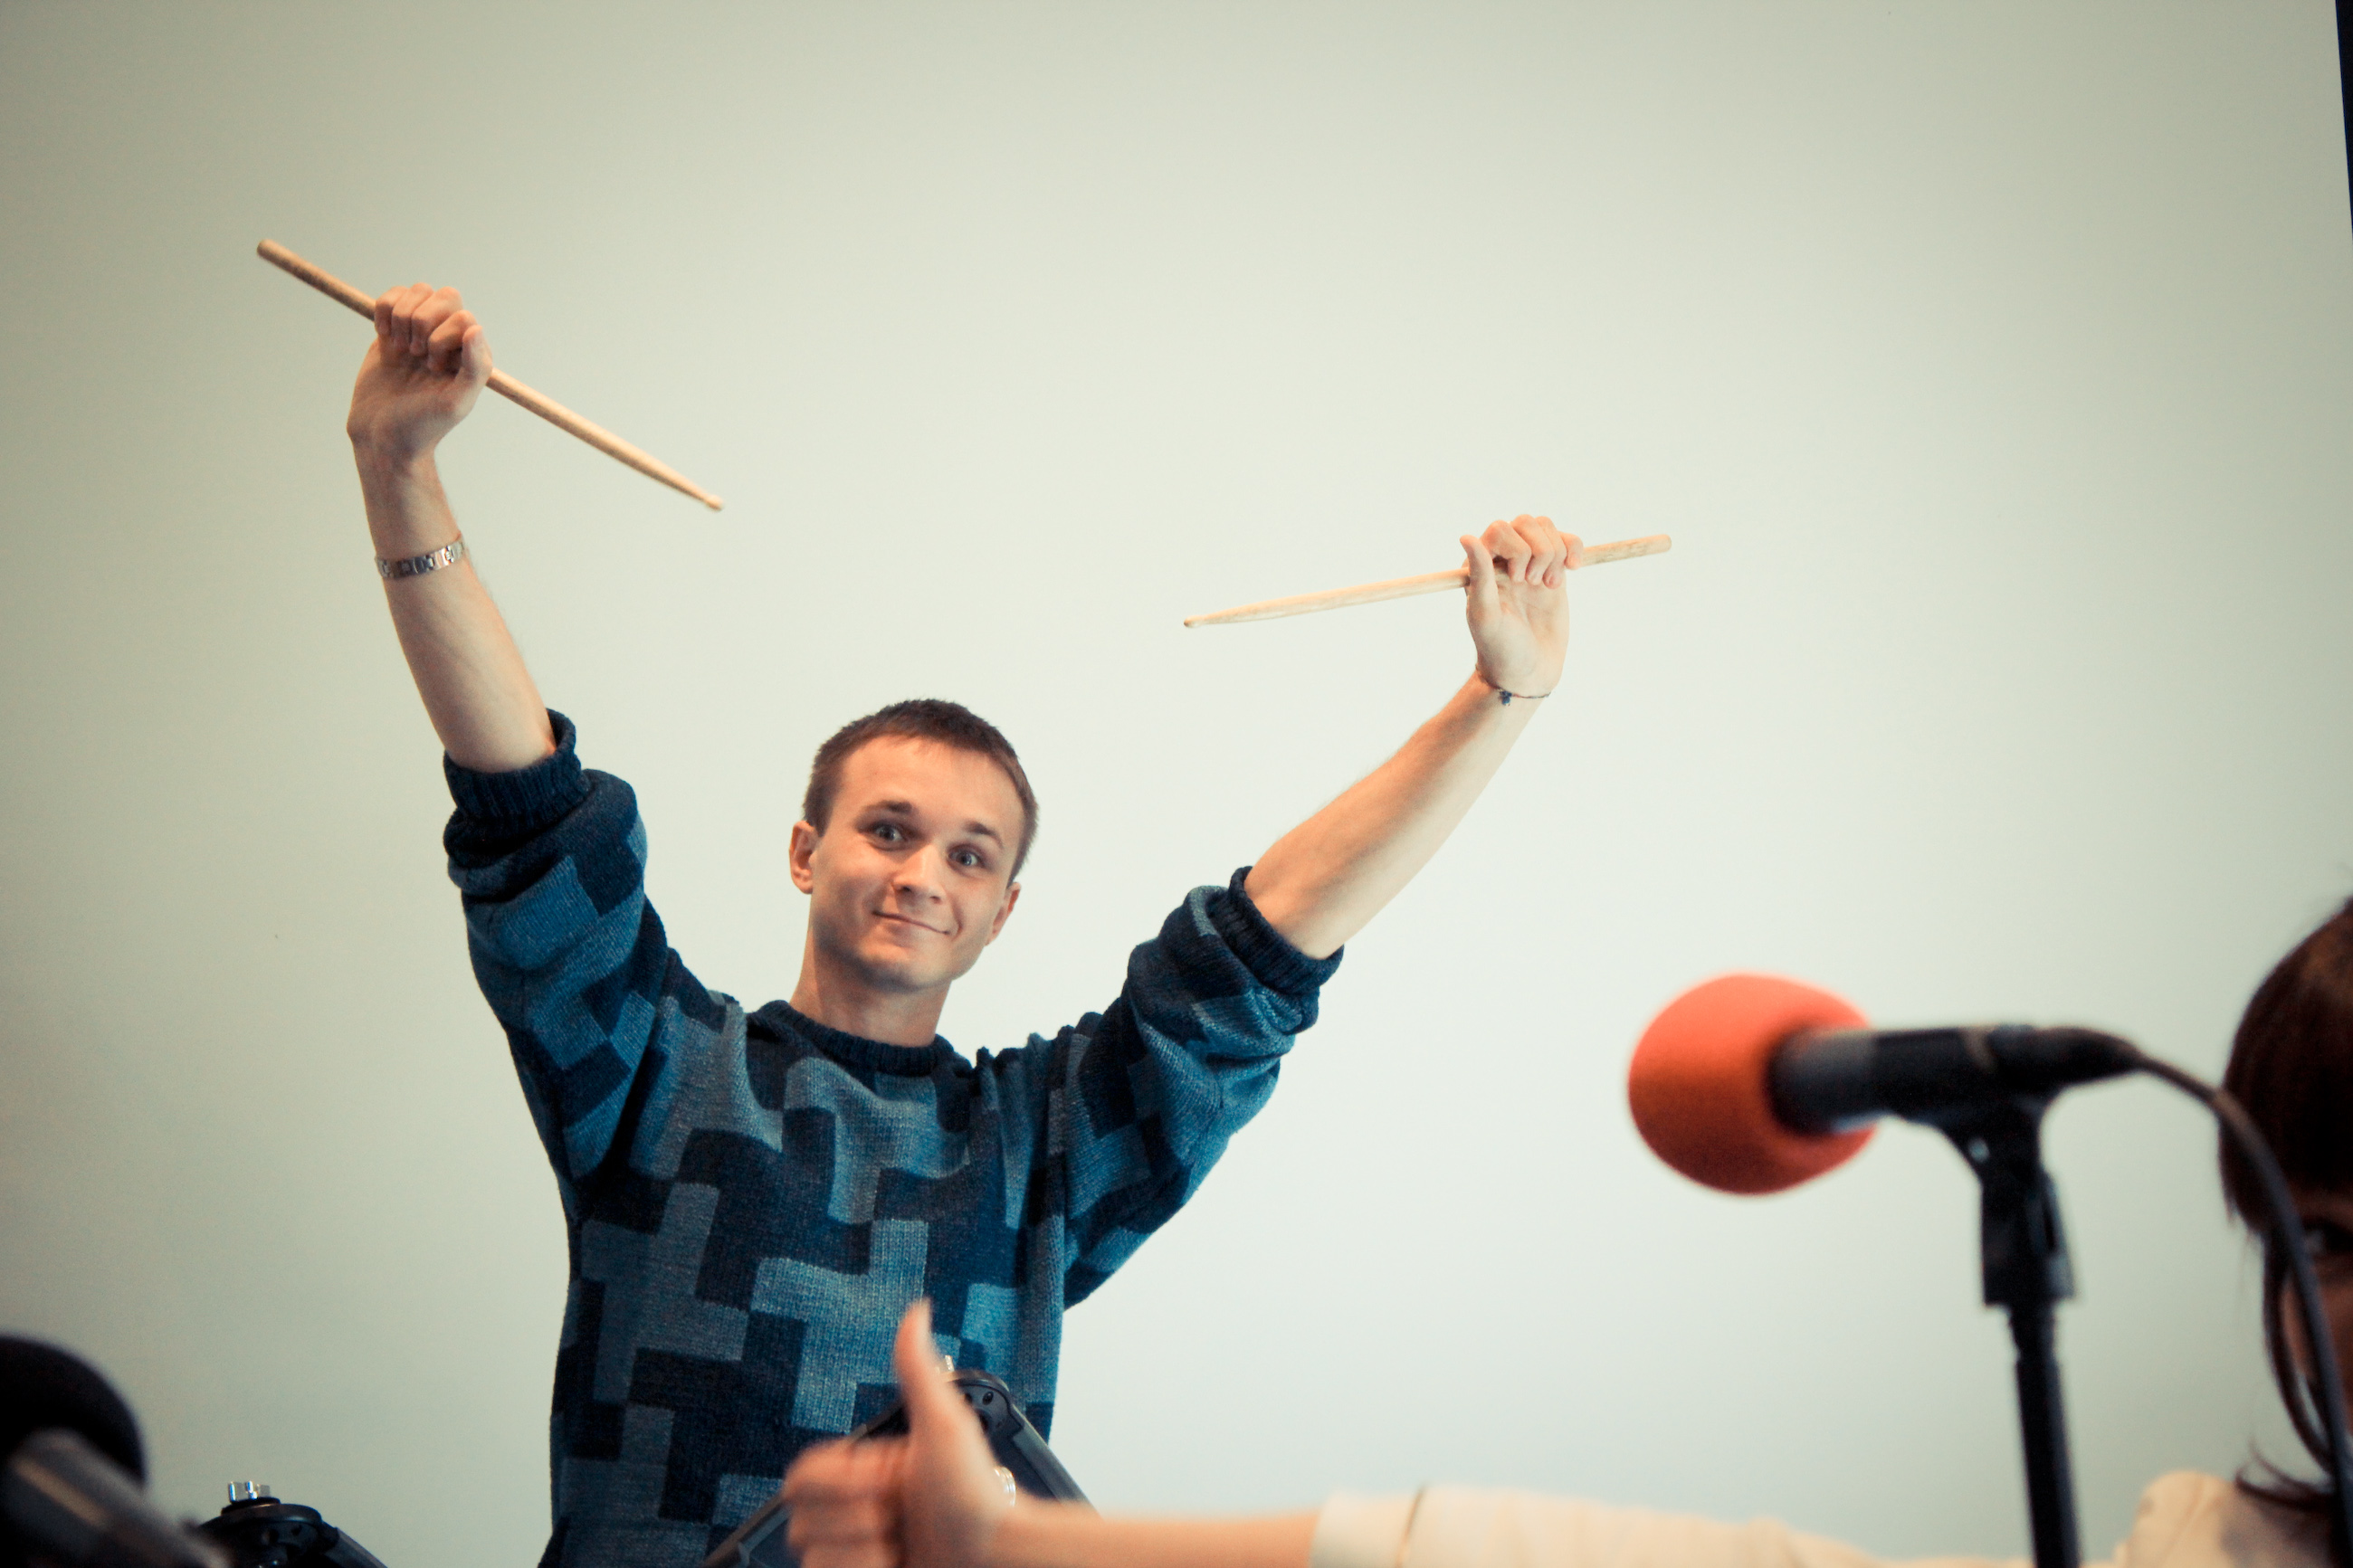 Operating the drumsticks